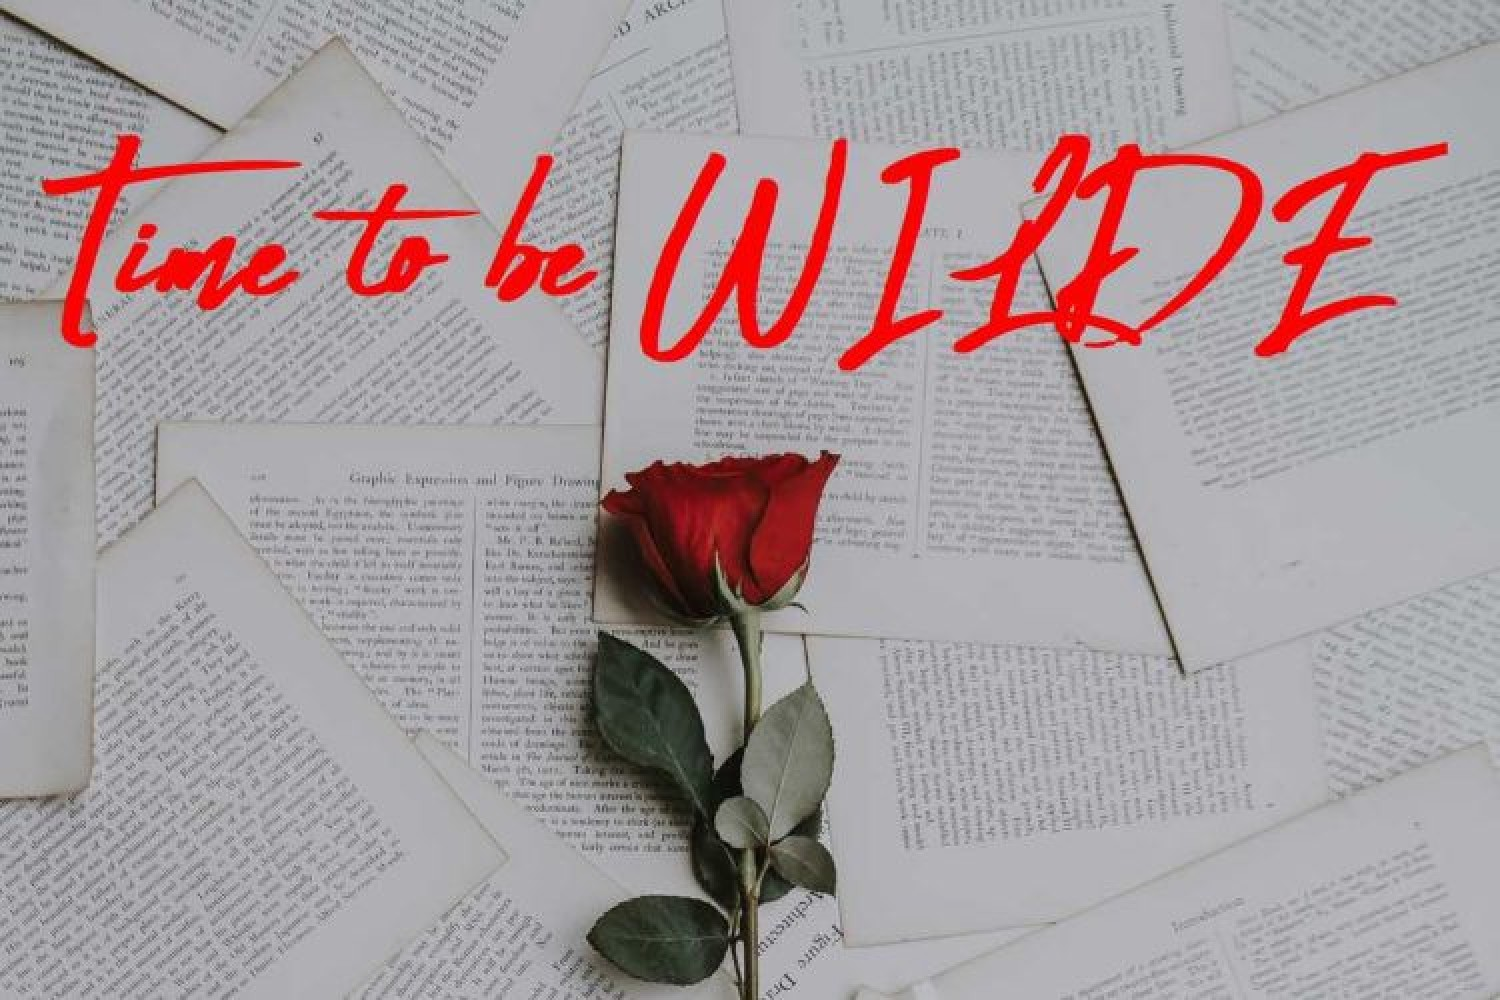 Time to be WILDE: a Milano laboratorio teatrale monografico